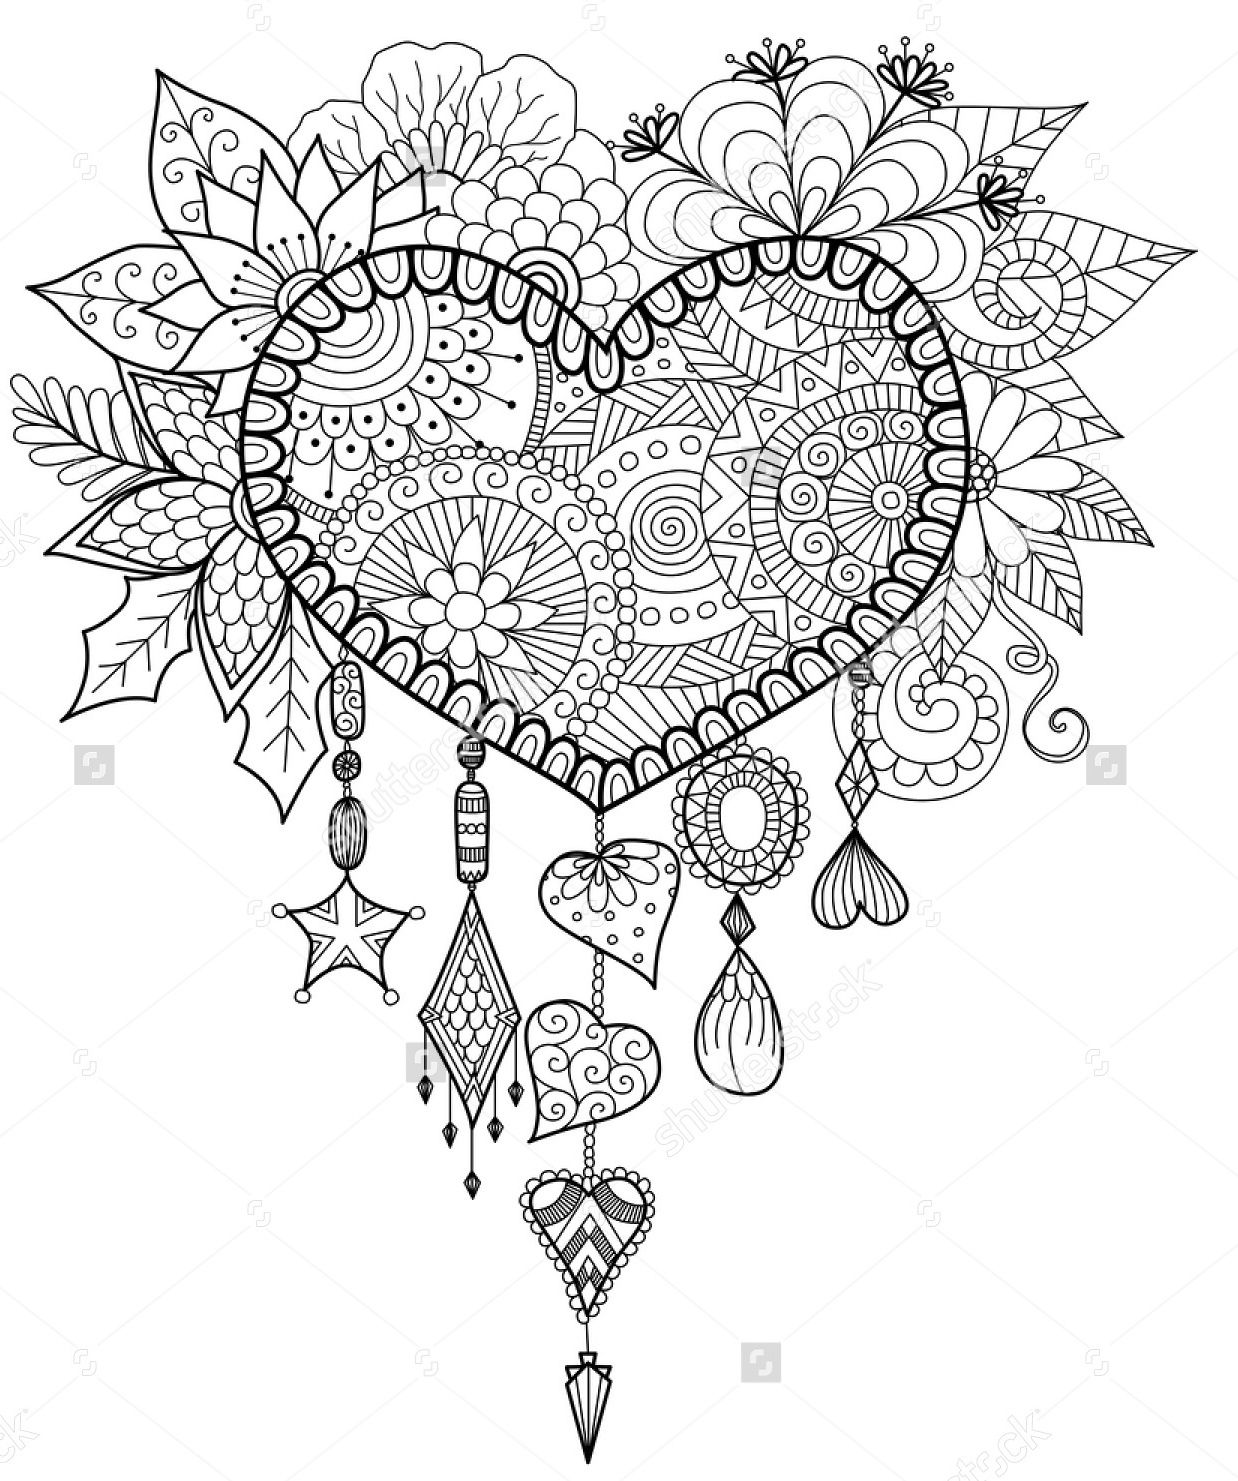 heart shaped floral dreamcatcher shutterstock. Black Bedroom Furniture Sets. Home Design Ideas